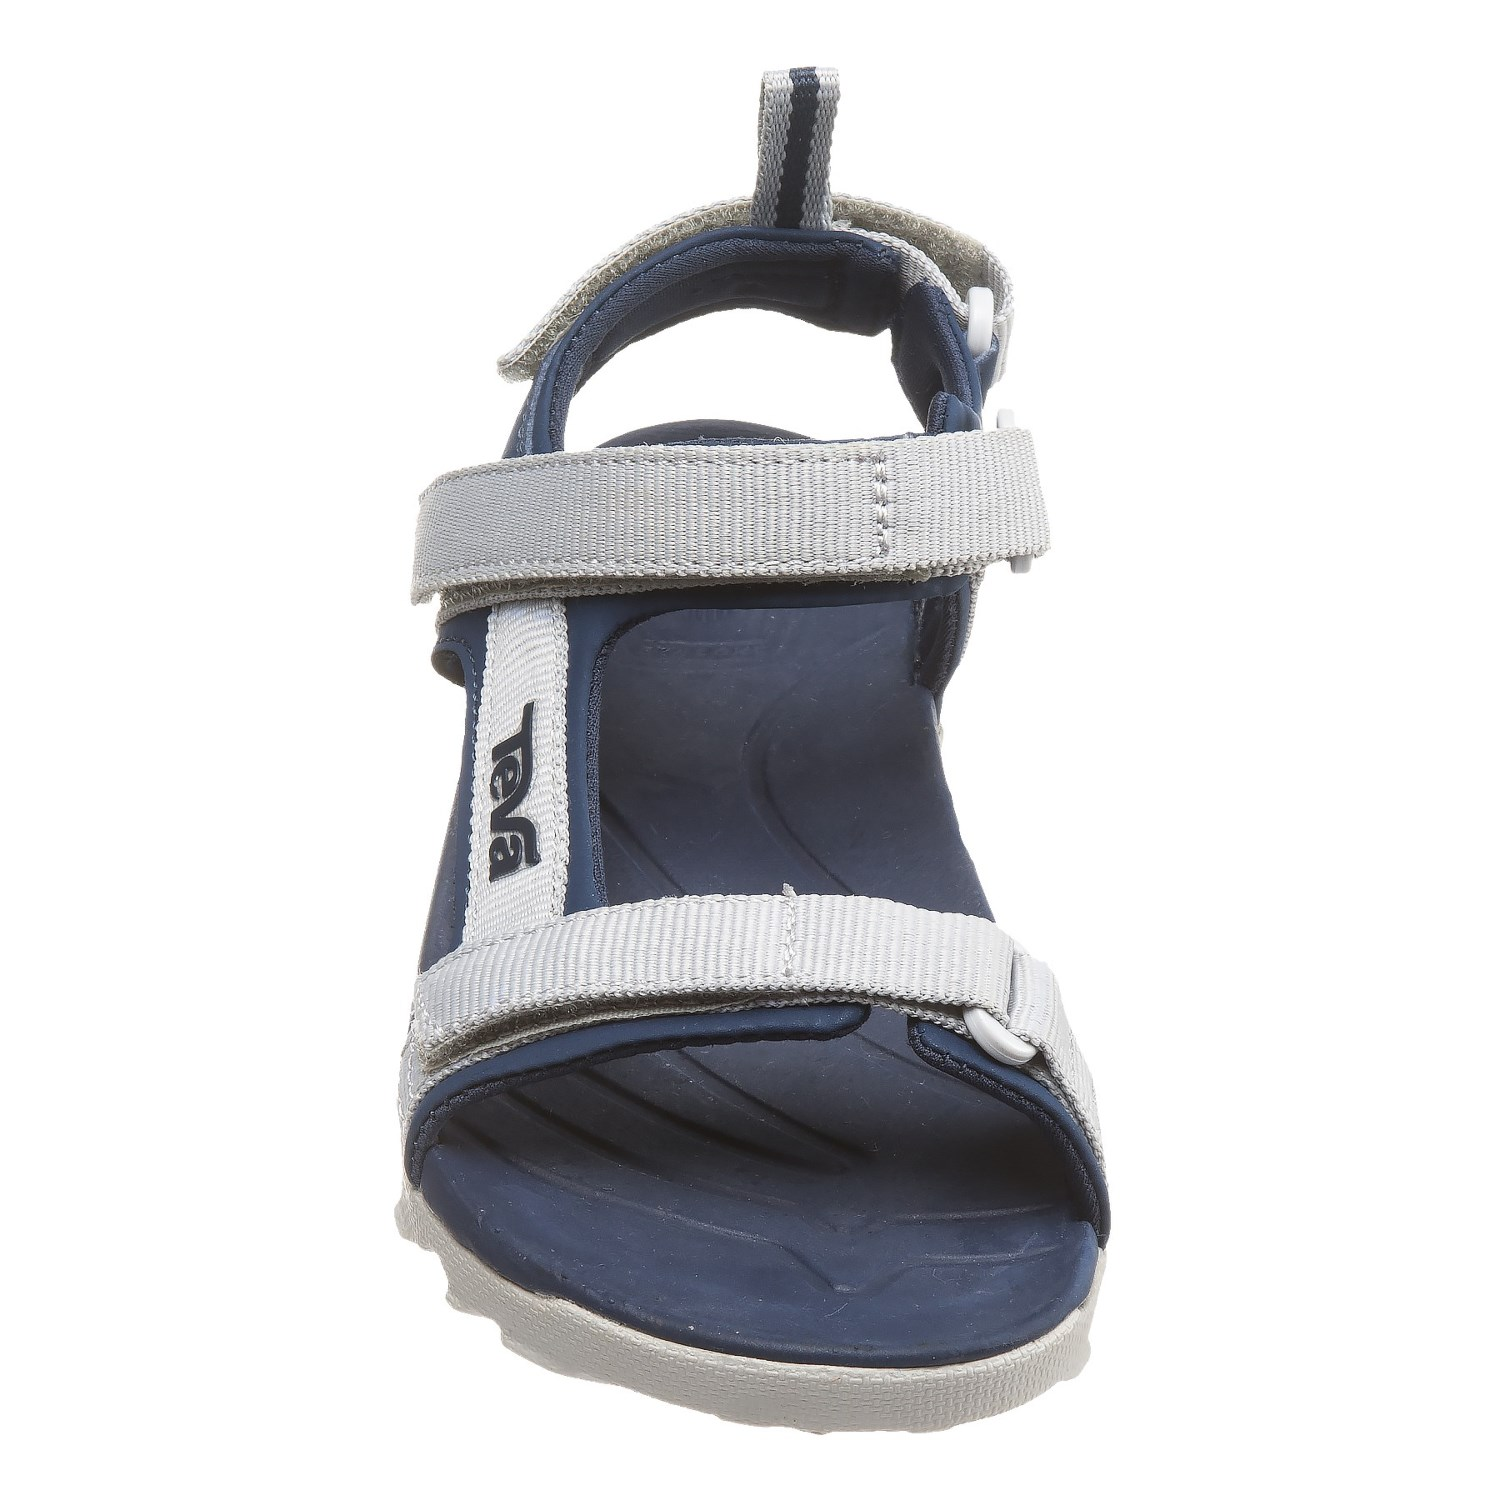 0619c67c53a011 Teva Tanza Sport Sandals (For Boys) - Save 50%